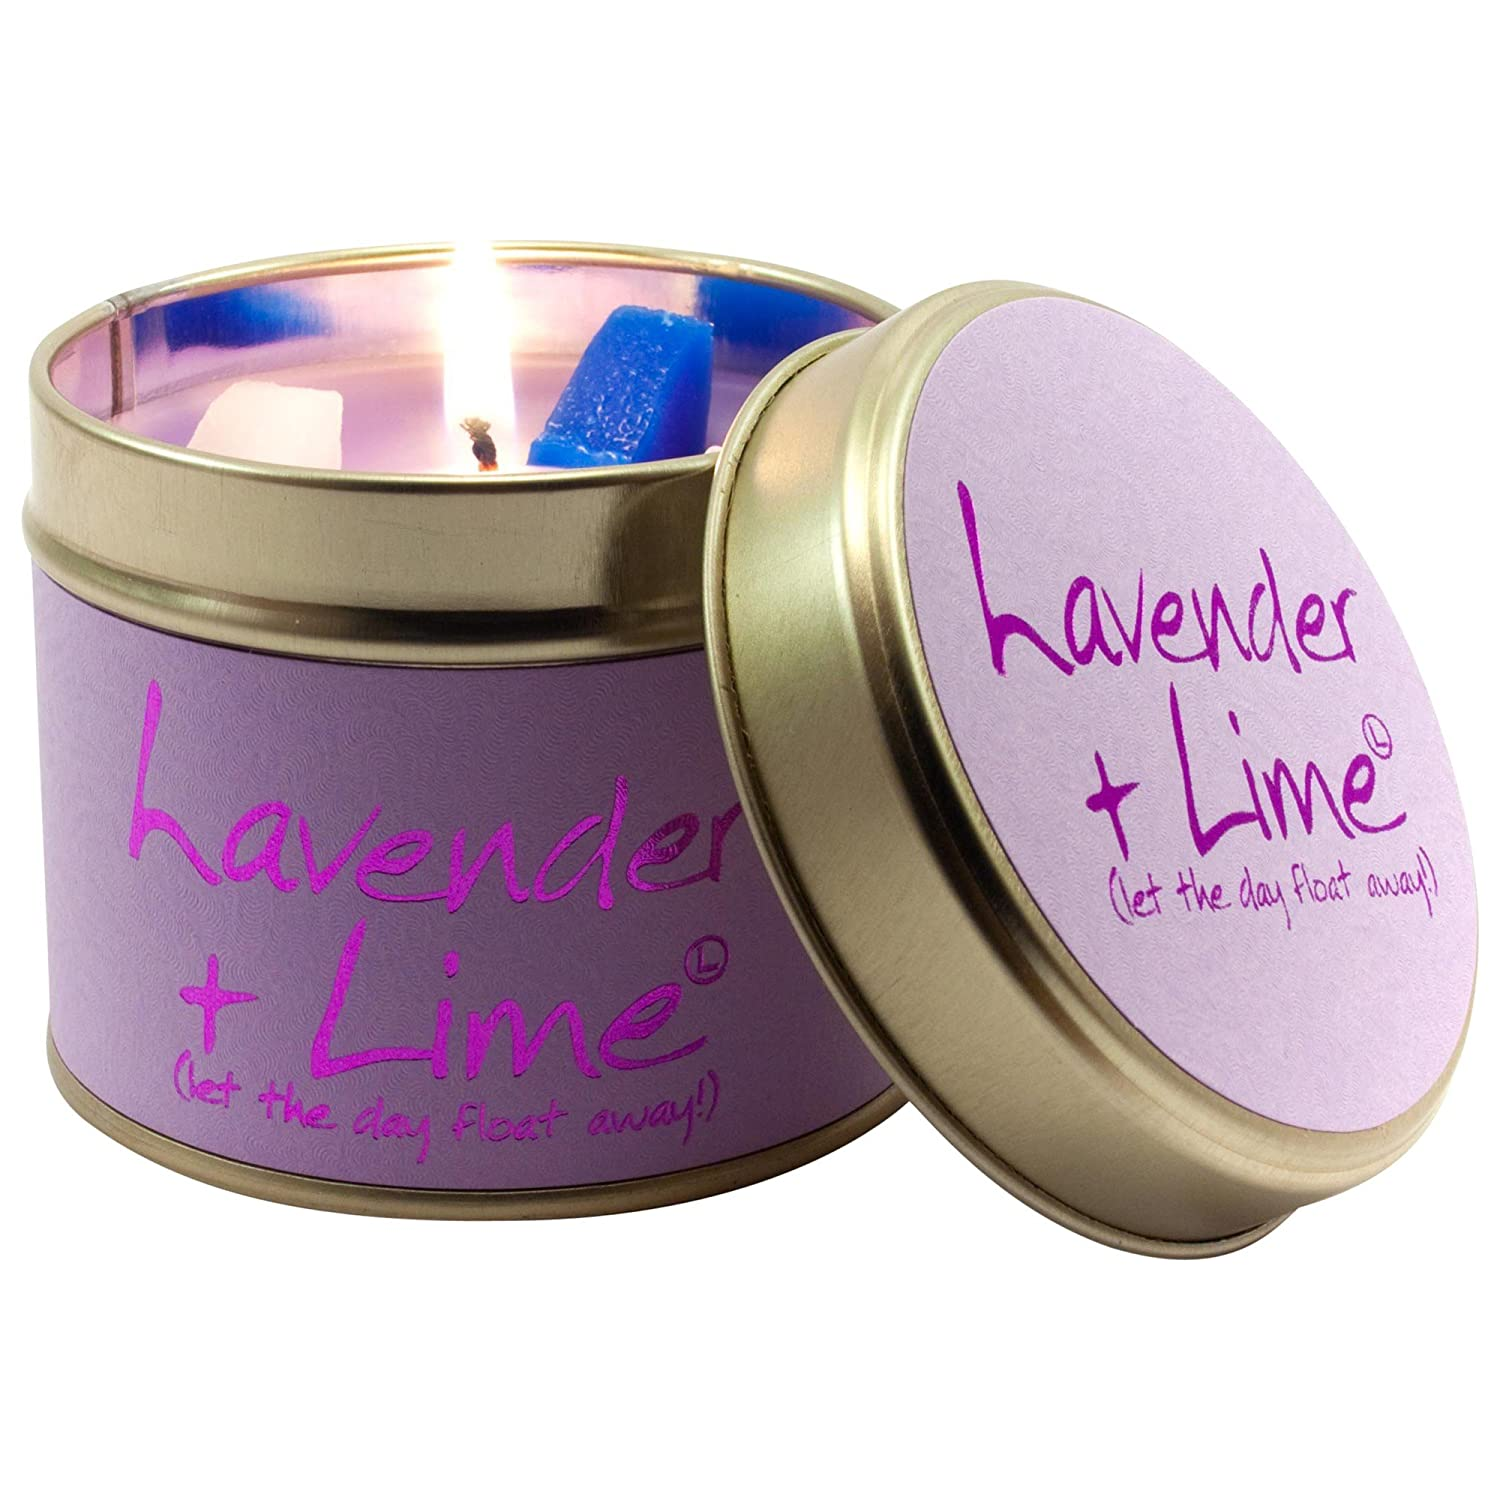 Lily-Flame Lavender and Lime Scented Candle Jar (Pack of 6) - ユリ炎ラベンダー、ライムの香りのキャンドルジャー (Lily-Flame) (x6) [並行輸入品] B01N3KSYKU